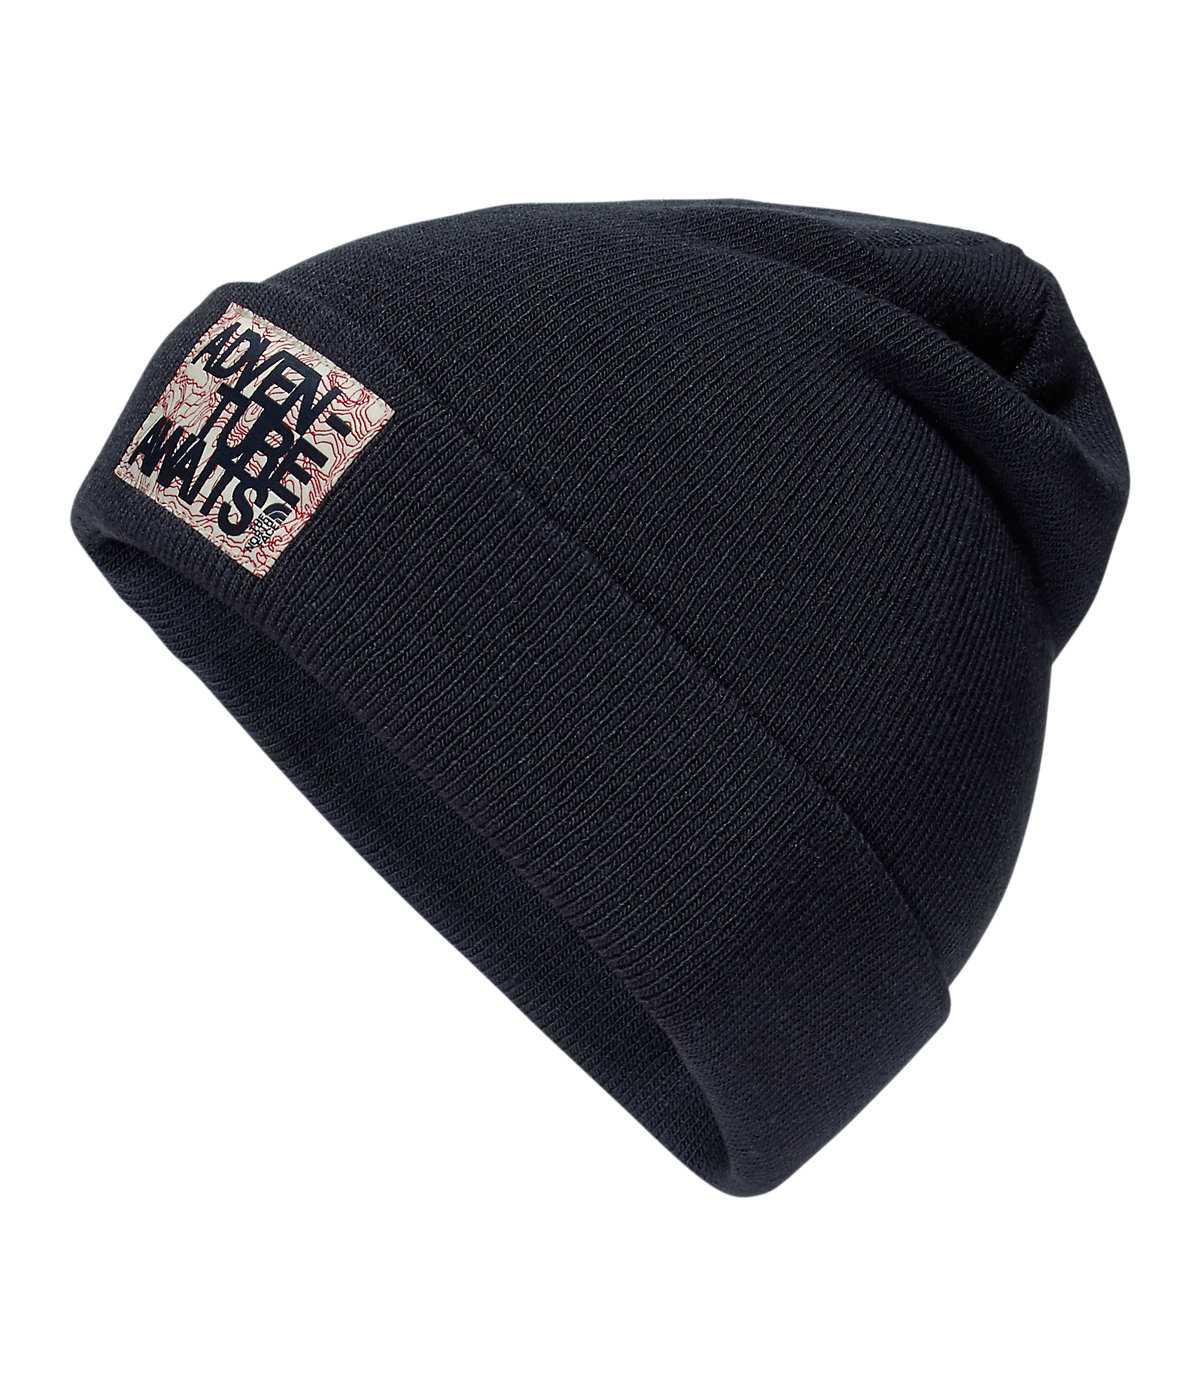 Youth Dock Worker Beanie Beanie Kids Clothes Boys North